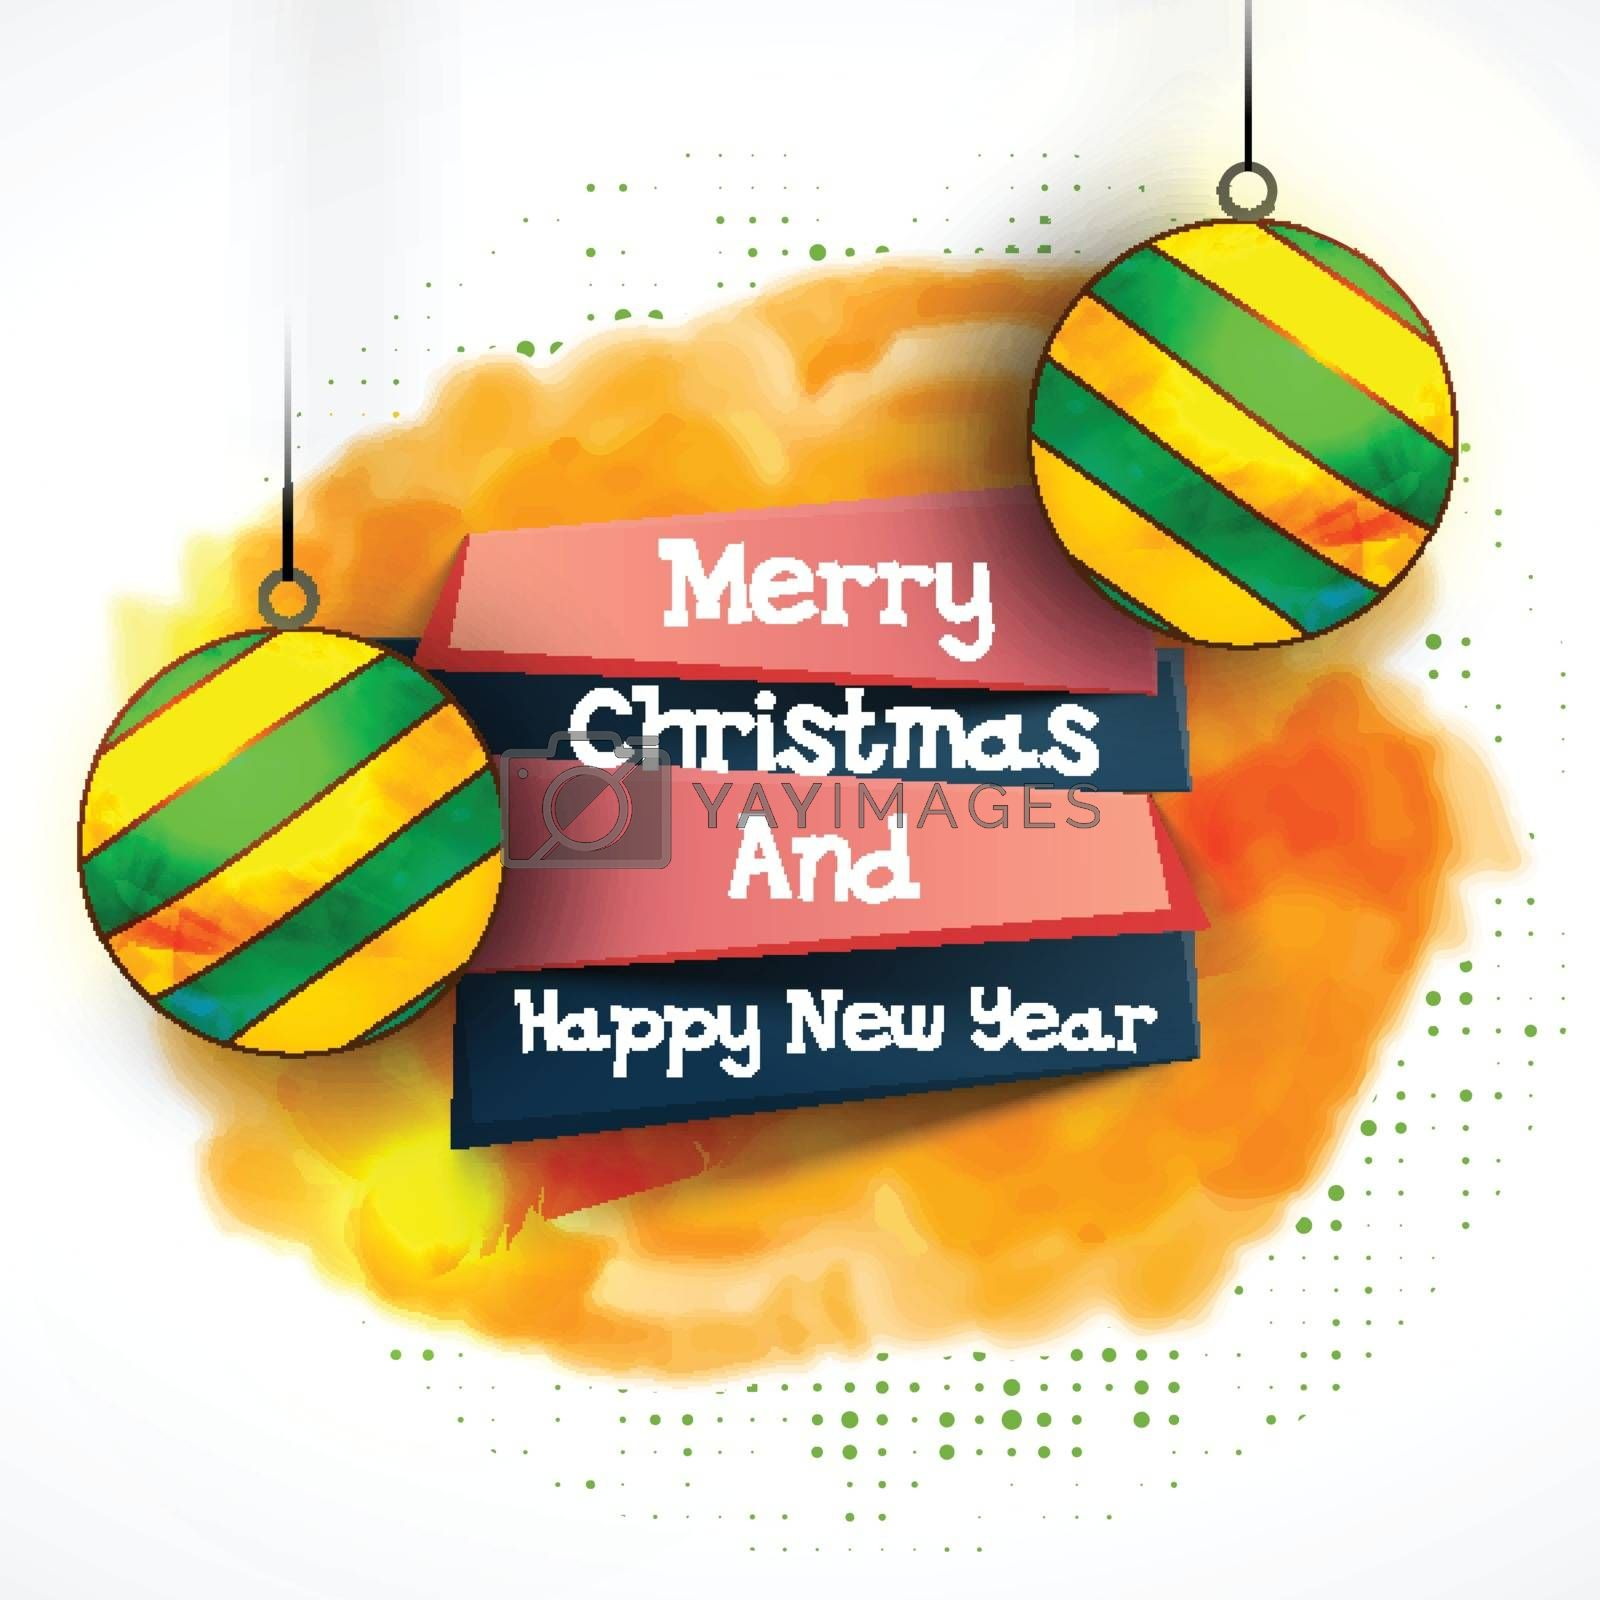 Merry Christmas and Happy New Year Party celebrations banner design, Abstract festive background decorated with glossy hanging Xmas Balls.